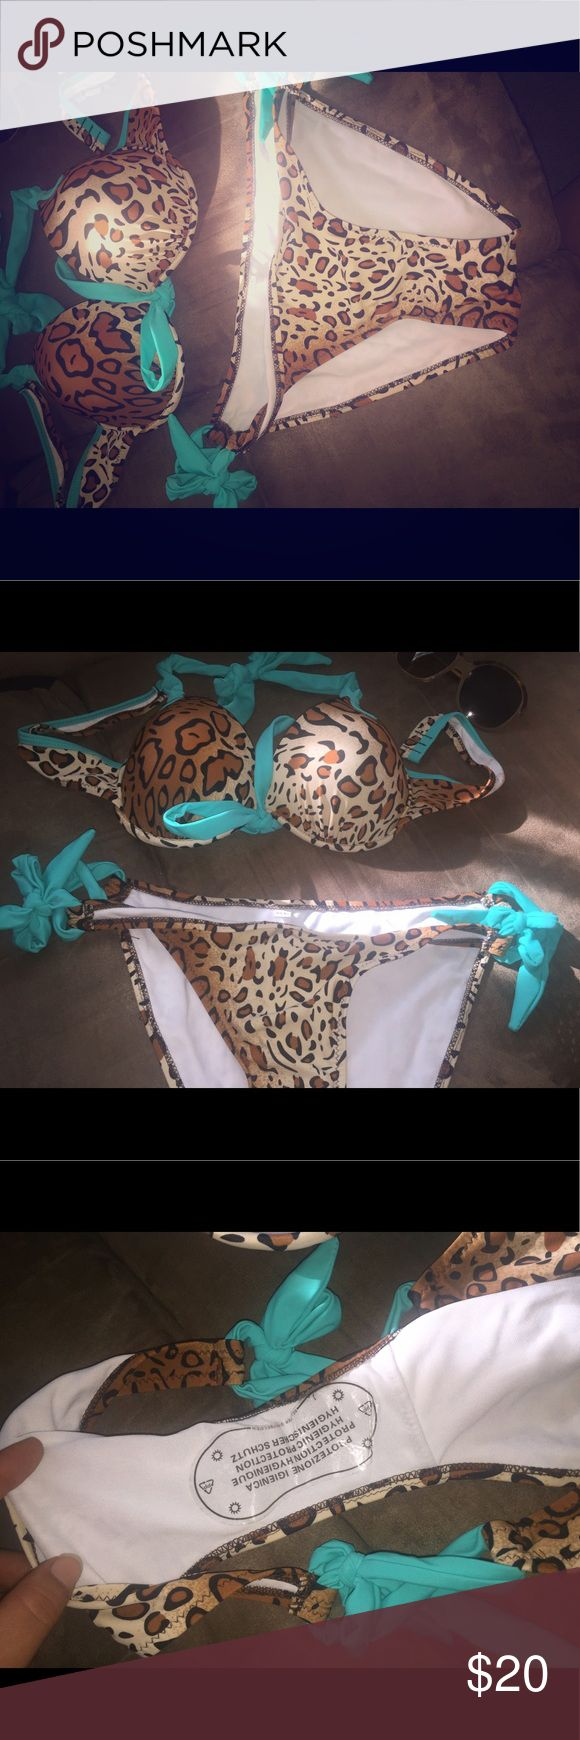 Leopard bikini with turquoise accents size L Never worn bikini leopard size L Swim Bikinis